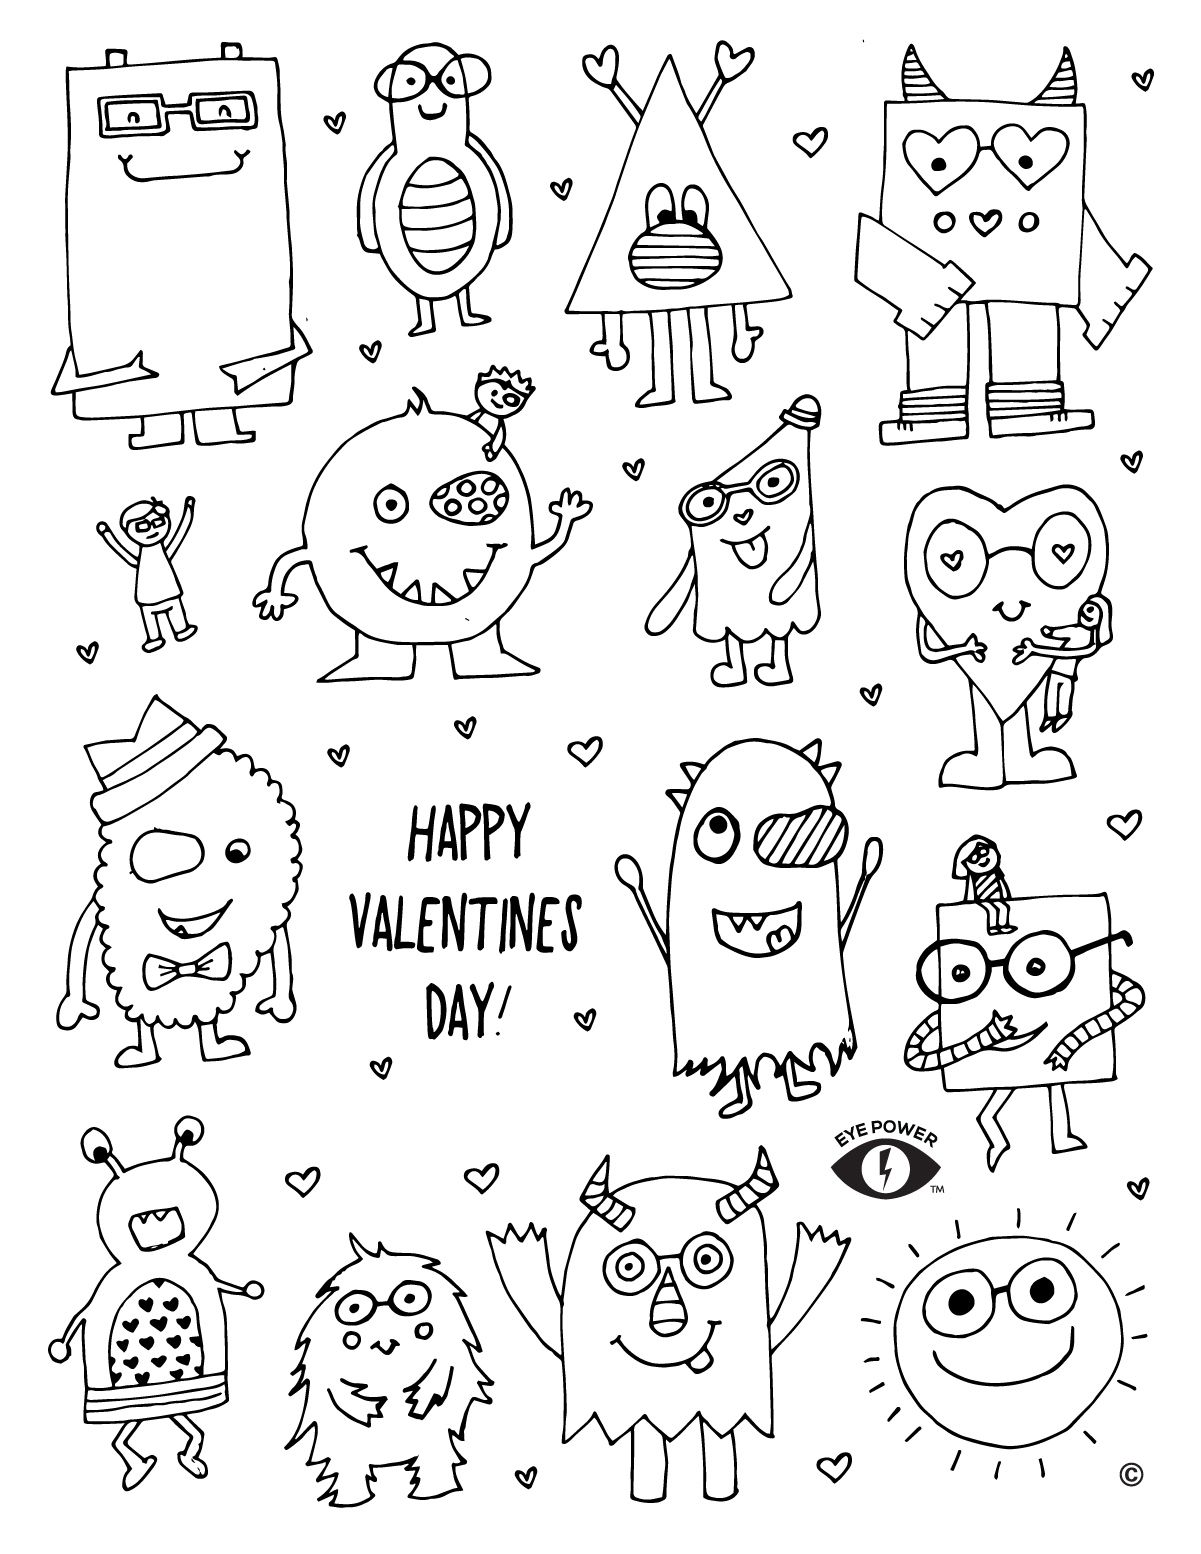 Free Valentines Coloring Pages For Kids In Glasses Or Eye Patches